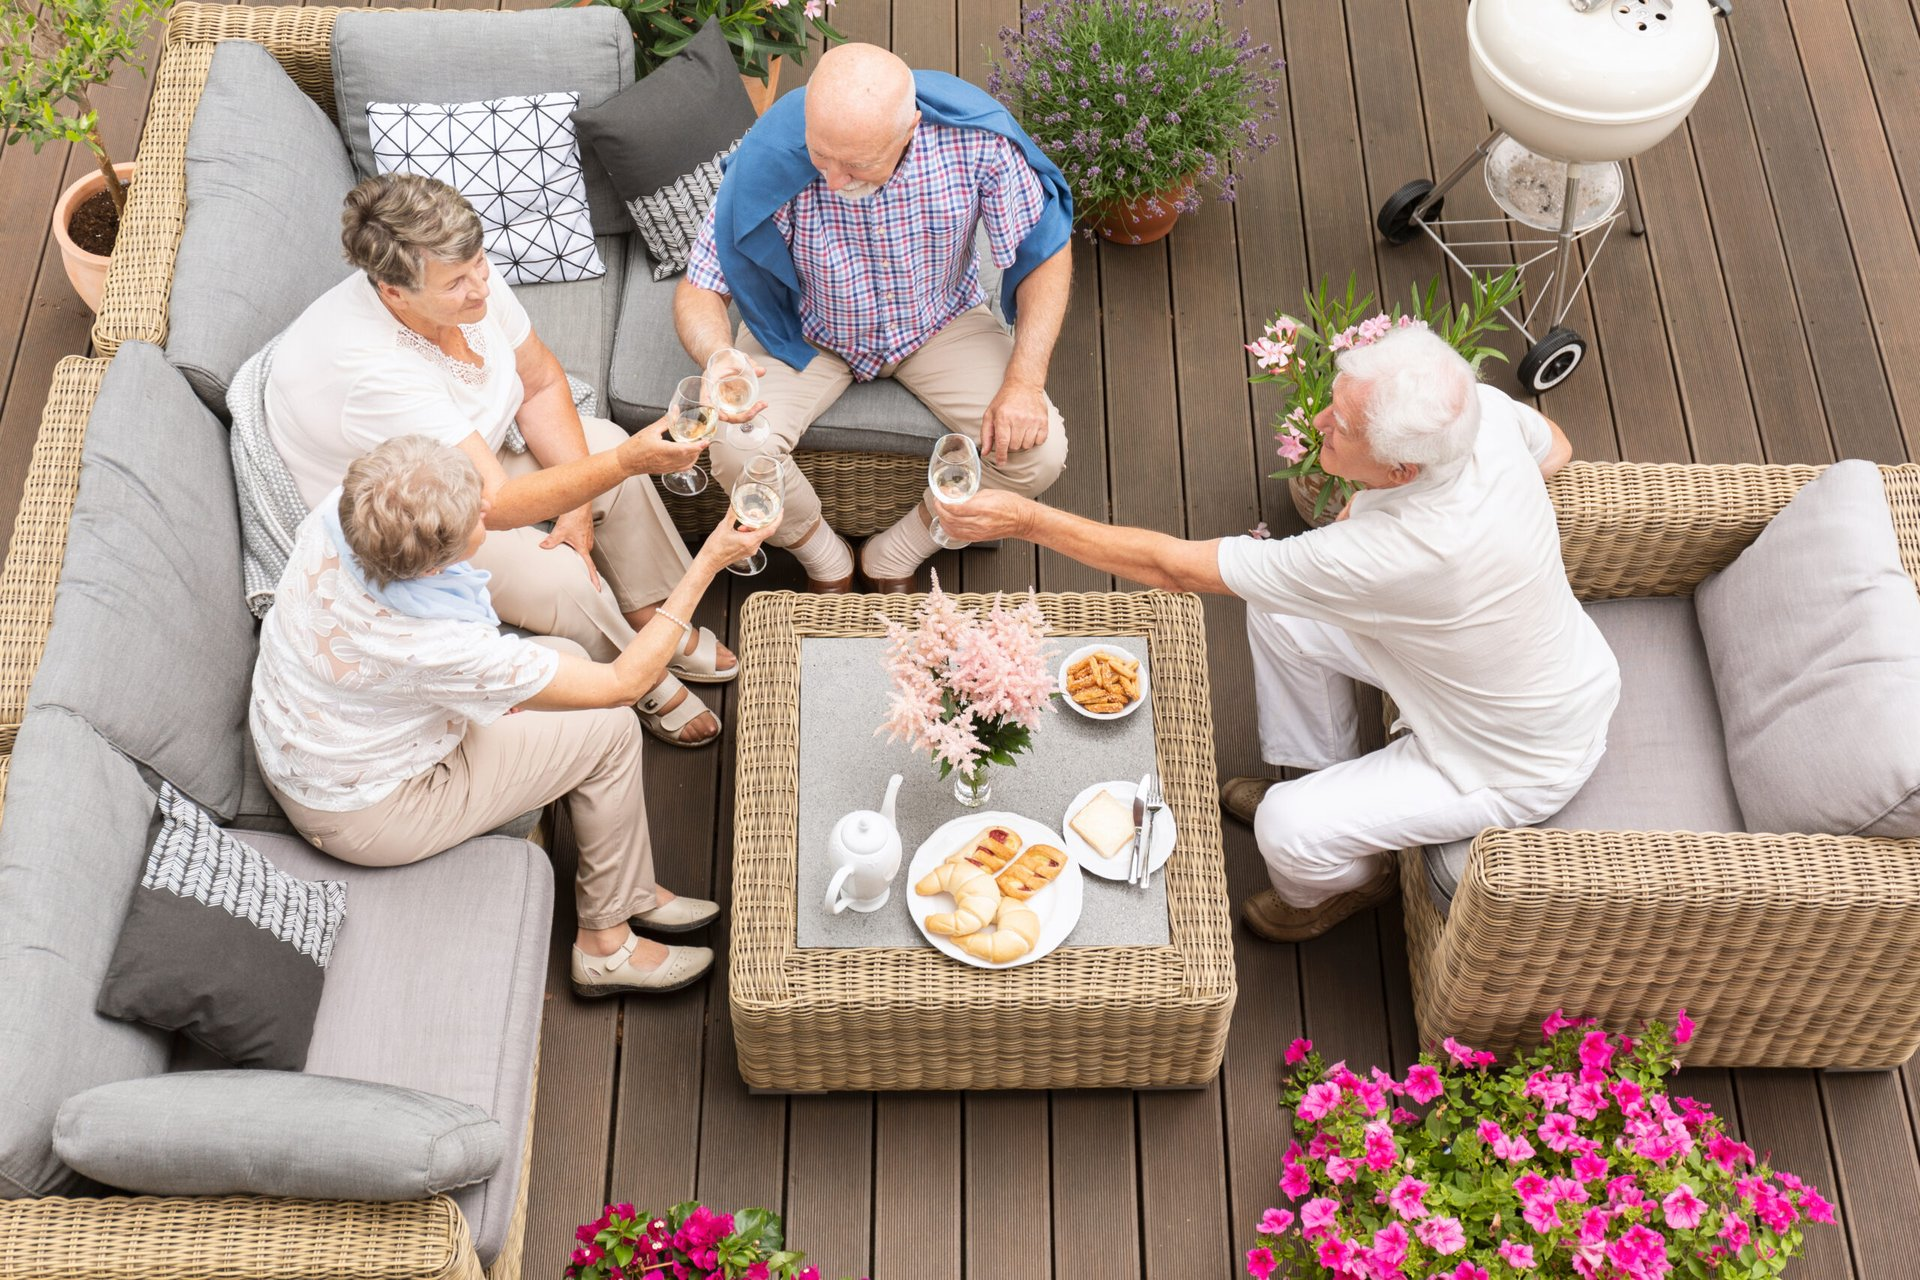 Senior friends eating outdoors on a deck